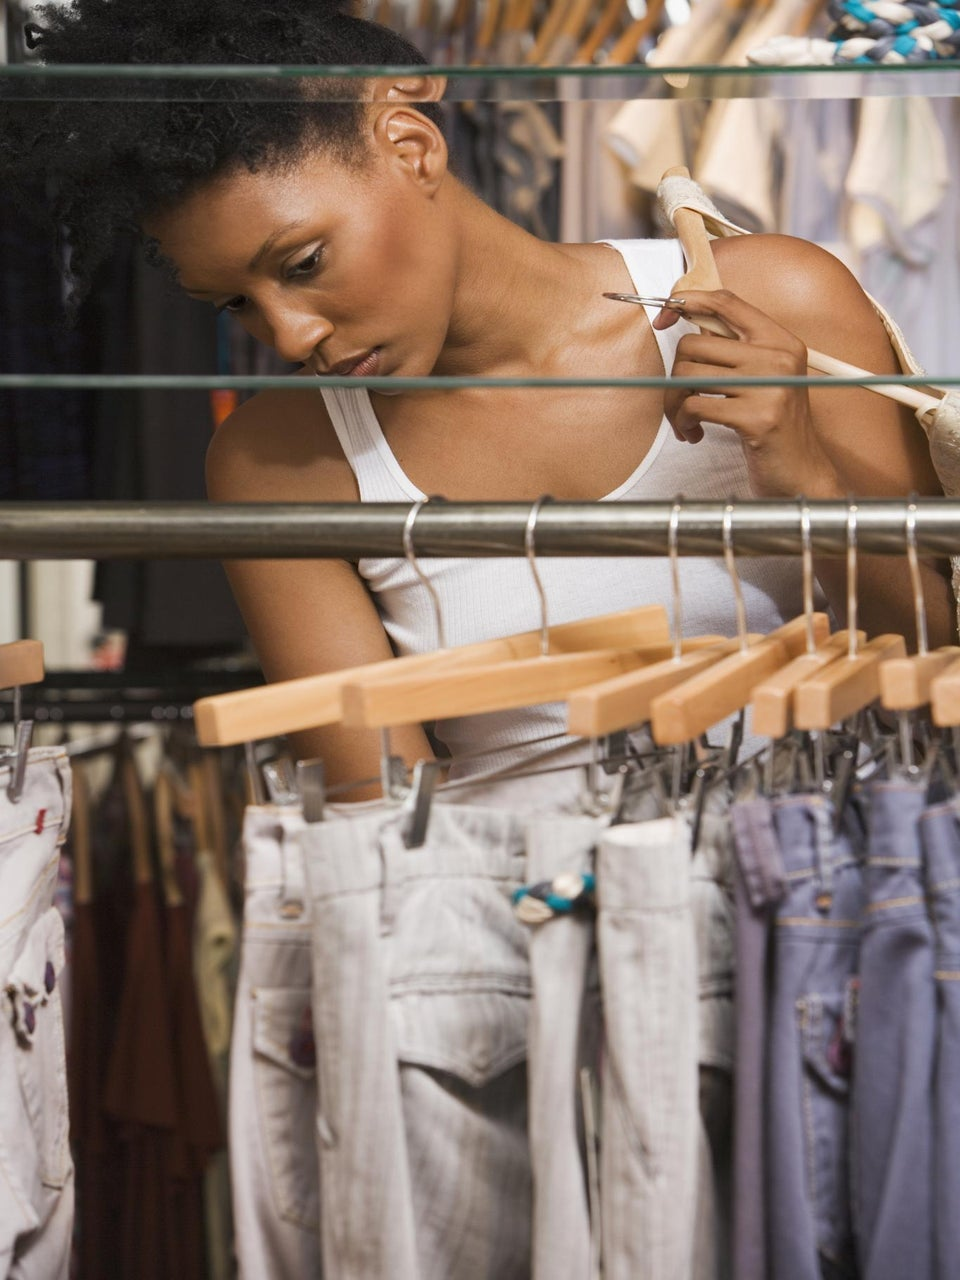 ESSENCE Poll: Would You Stop Shopping at Your Favorite Store if They Were Possibly Racially Profiling?